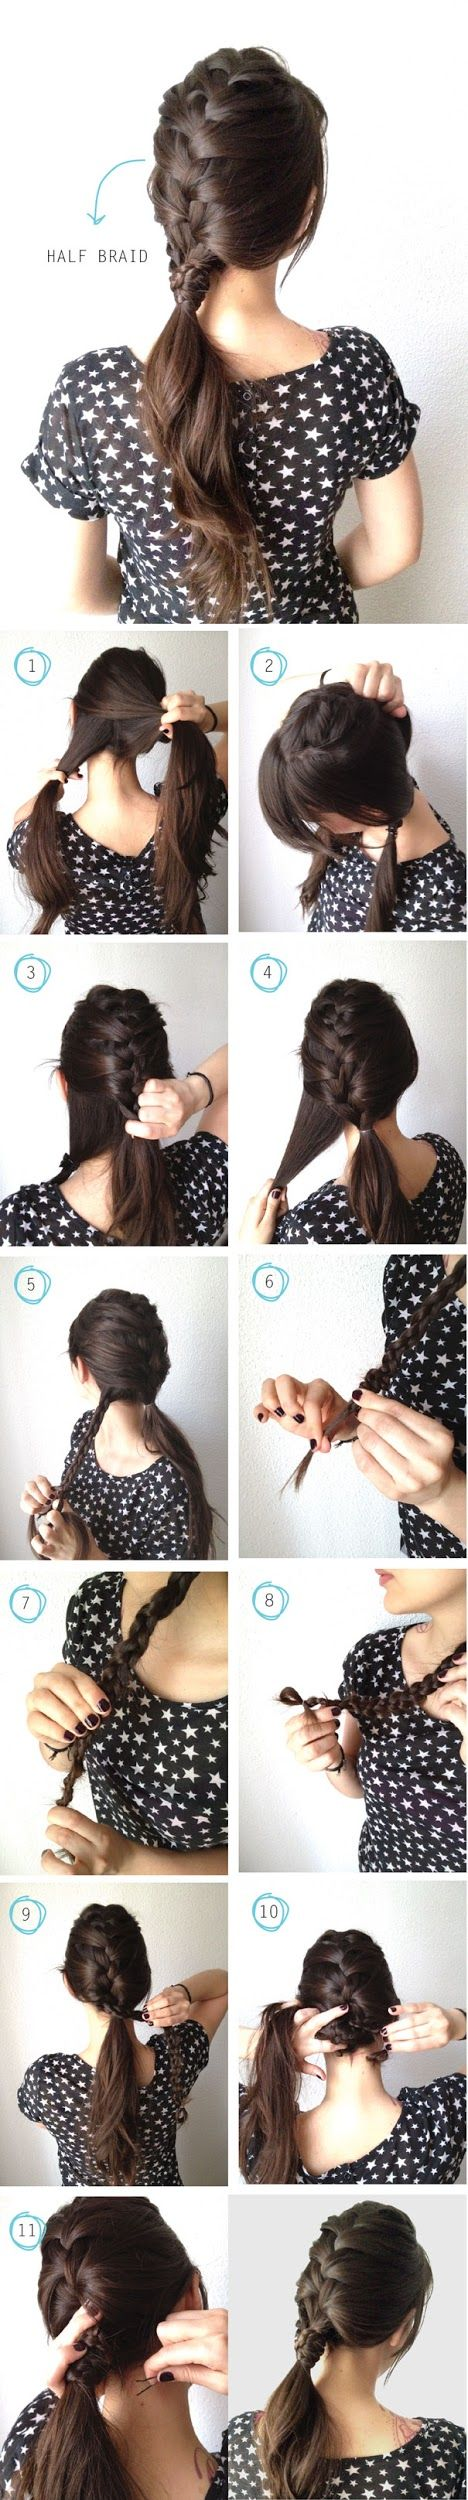 The Best 25 Useful Hair Tutorials Ever, How to make half braid for your hair